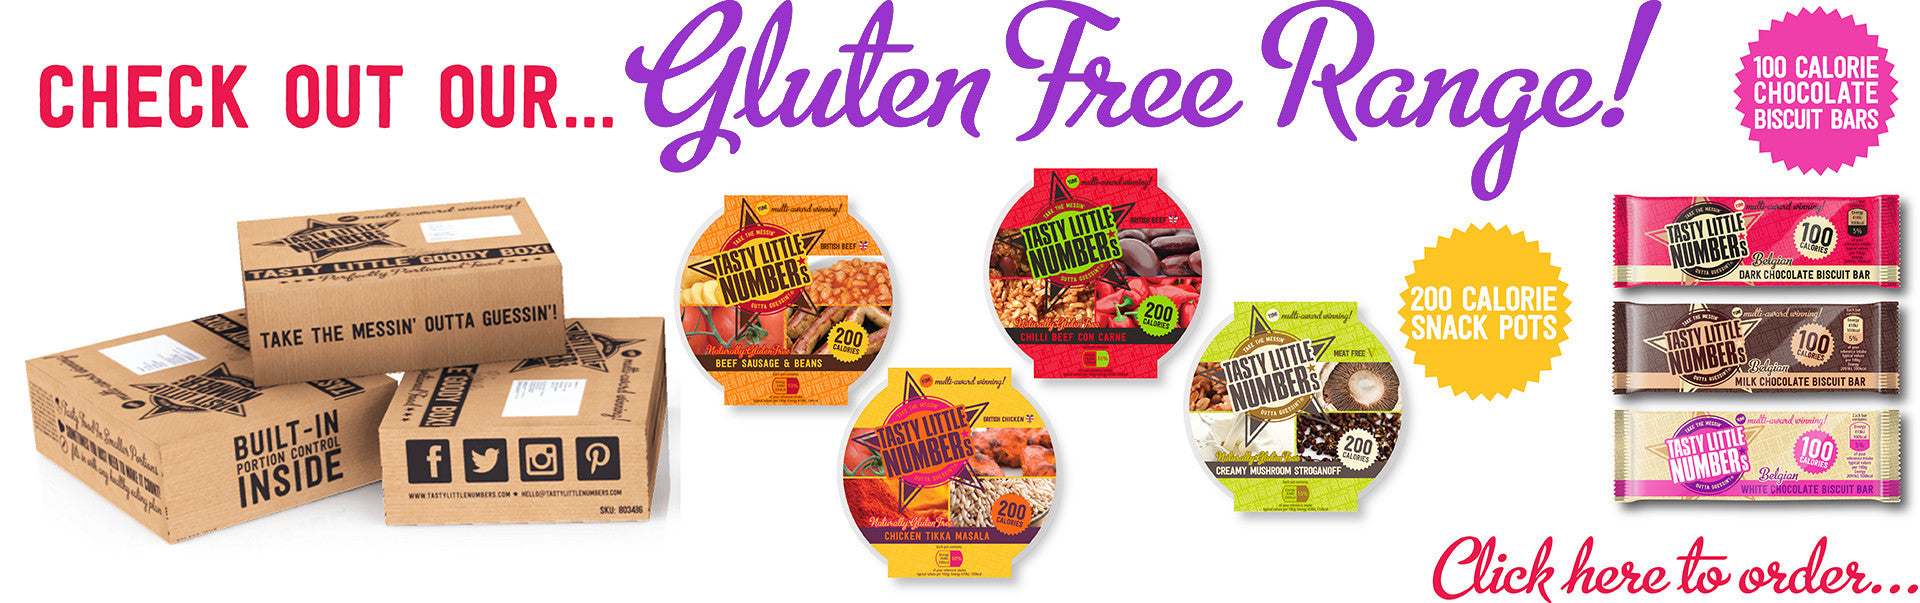 CHECK OUT OUR GLUTEN FREE RANGE! ALL SUITABLE FOR COELIACS!